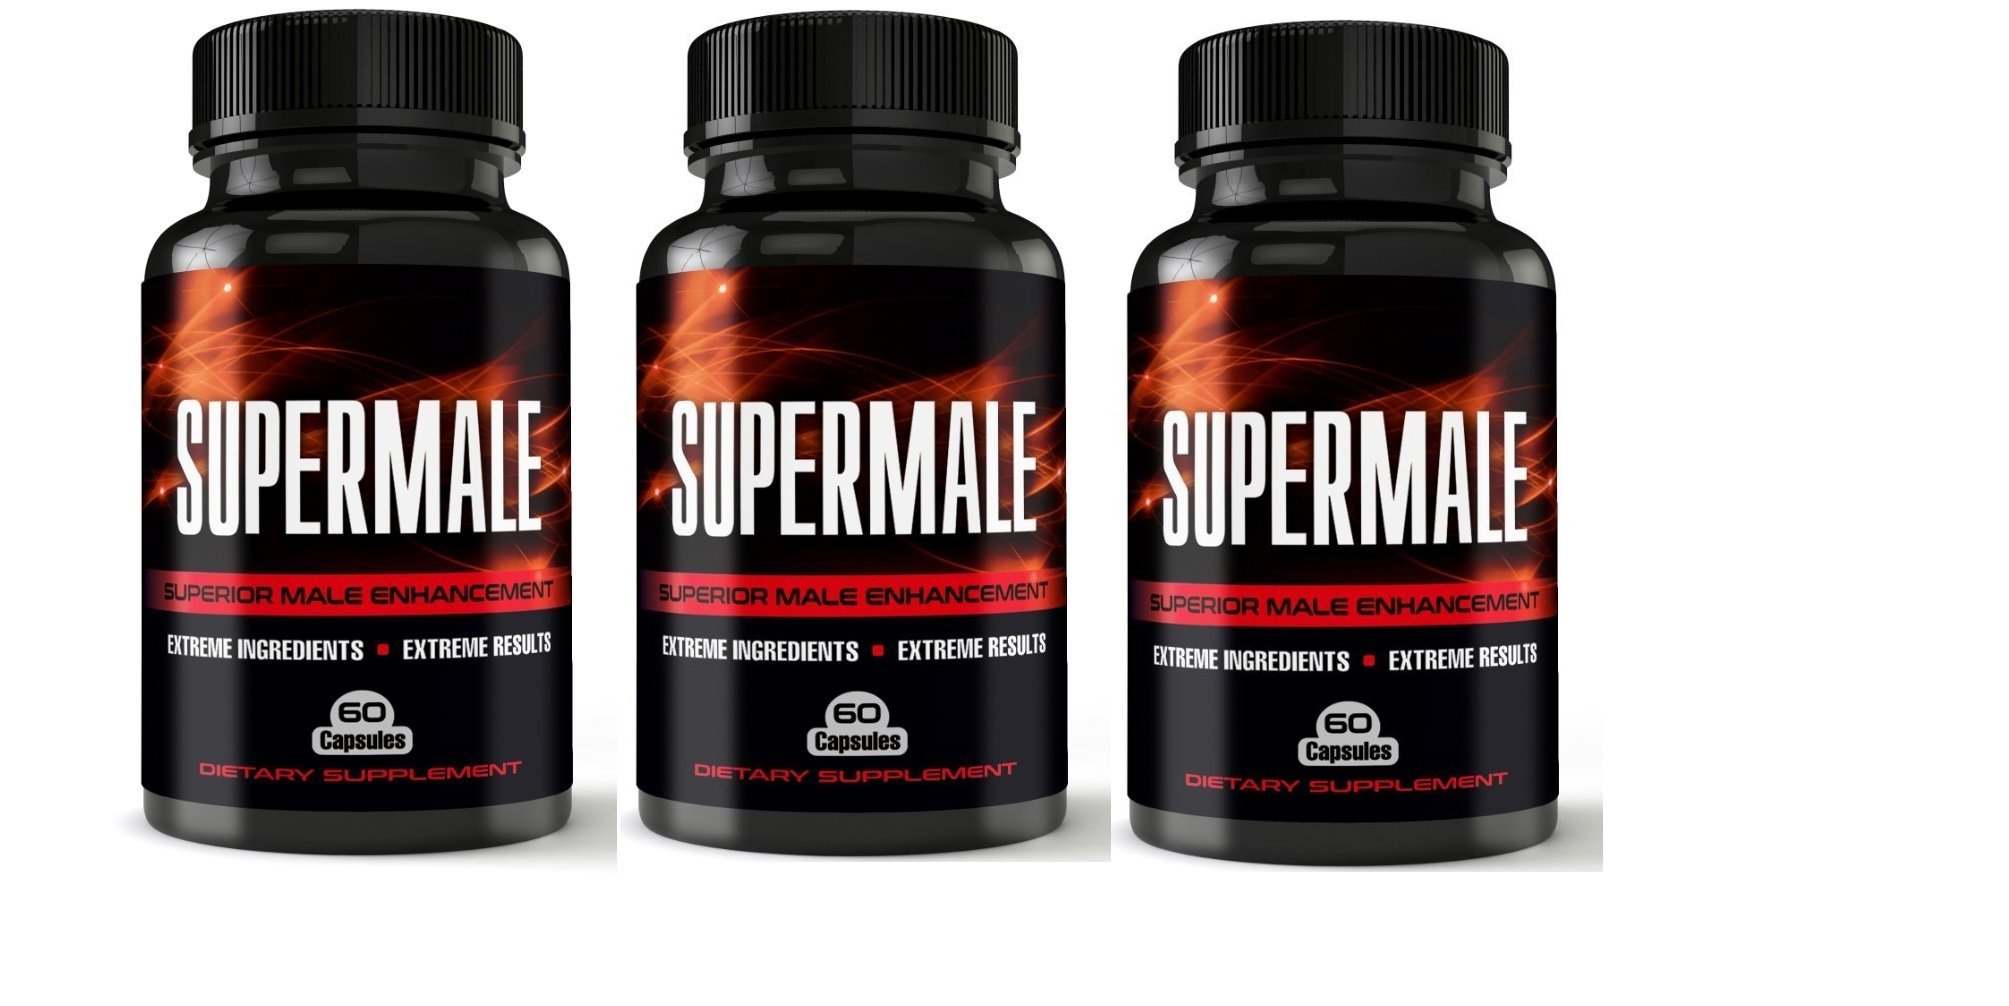 SuperMale - 3 Month Supply - Superior Male Enhancement Pills Increased Energy, Size, Sex Drive - Boost Libido and Testosterone - Sex Pills, Erection Pills, Enlargement Pills, All Natural Enhancement